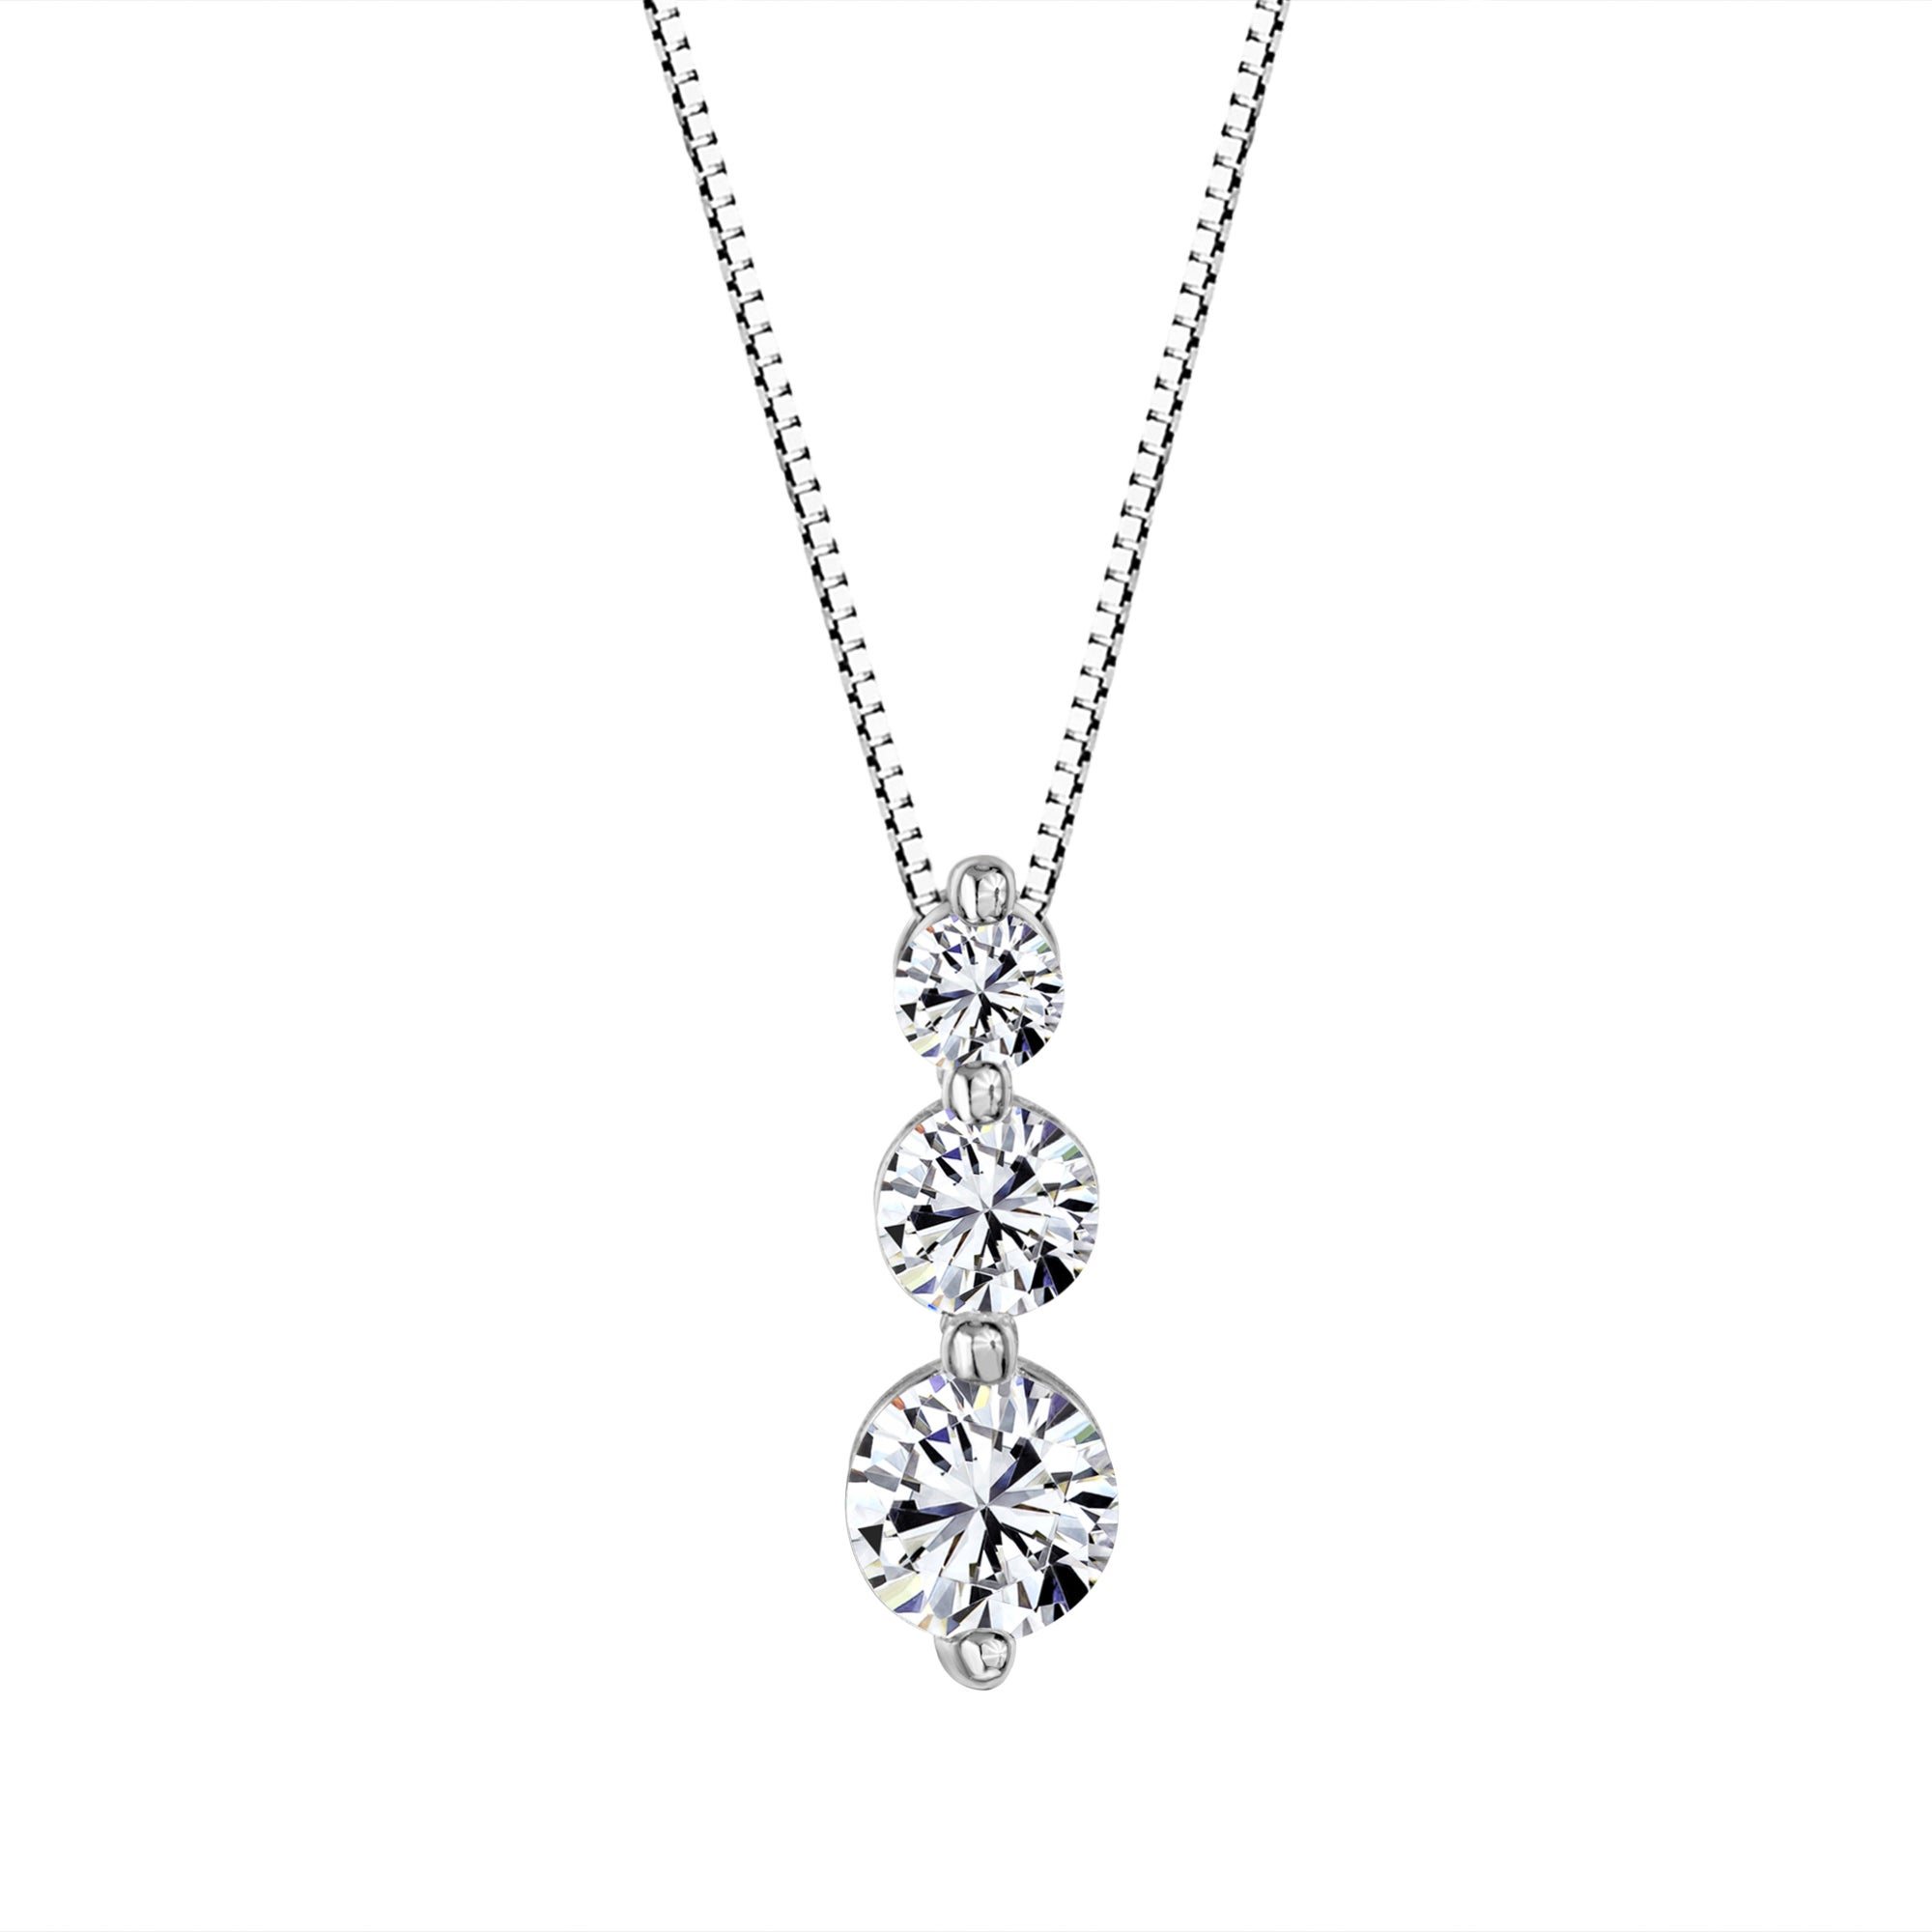 necklace diamond pendant collections cut brilliant featuring graff round classic pendants a